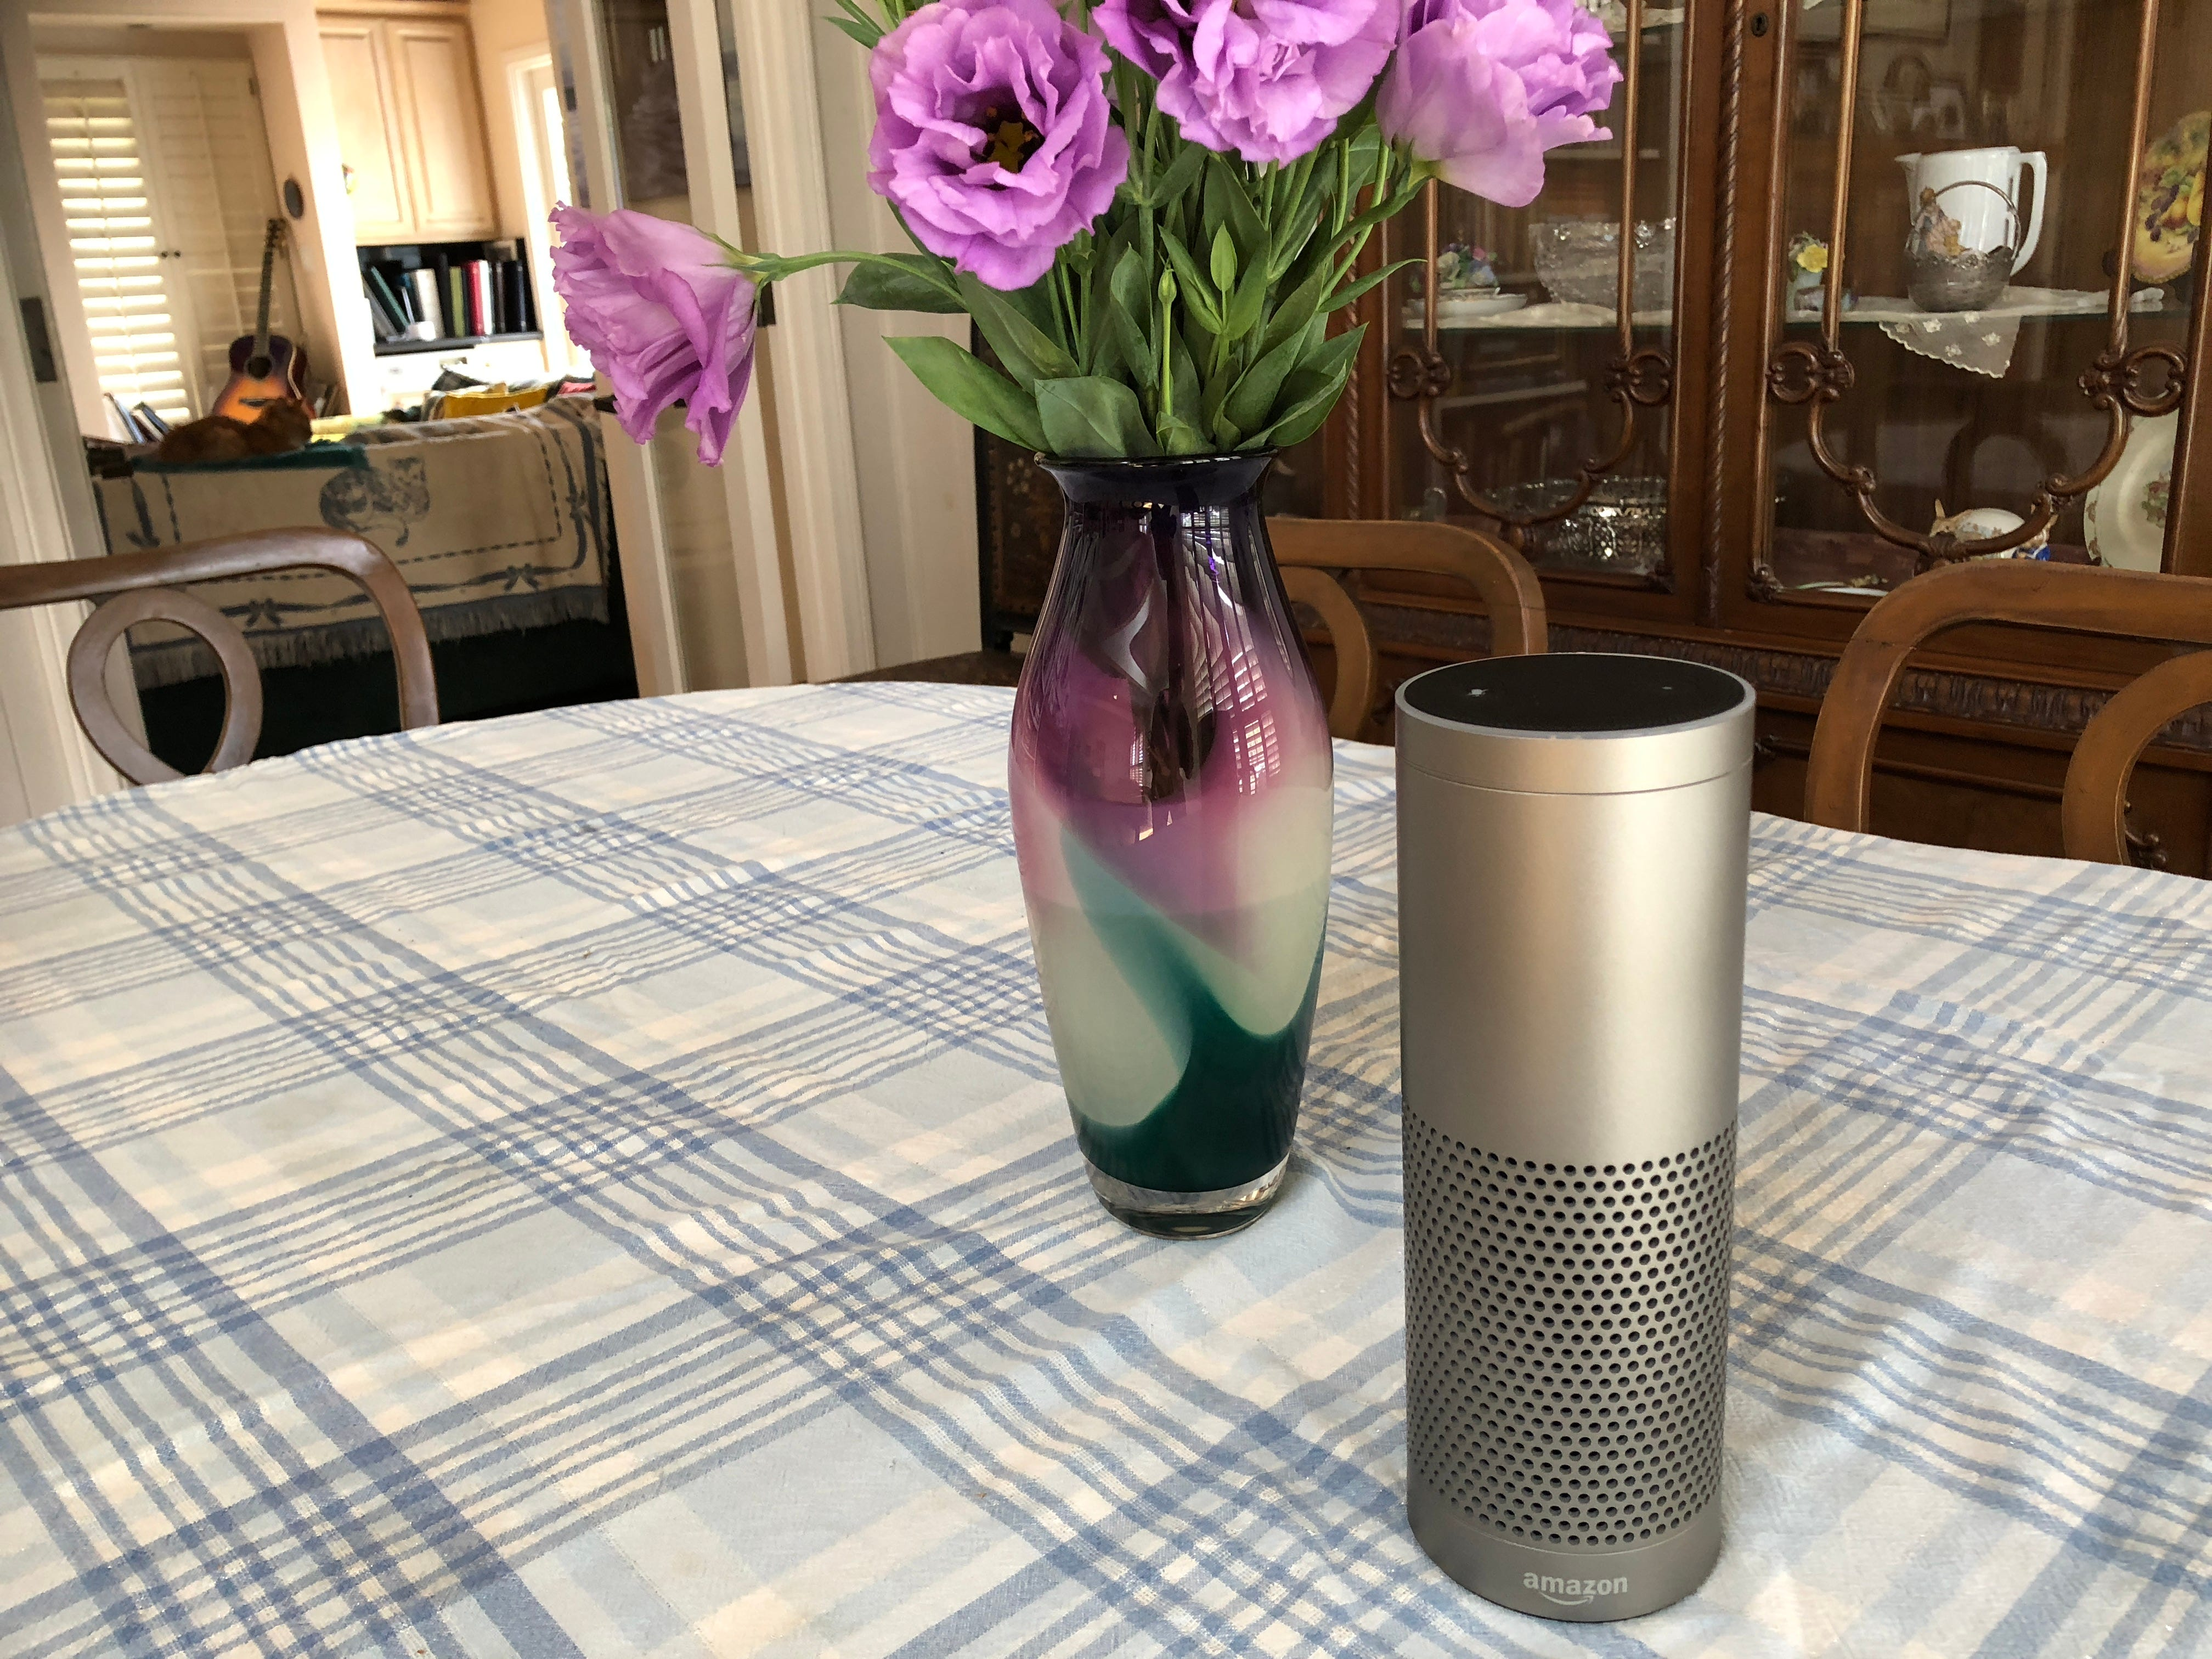 Shopping with Alexa on Amazon Prime day will be hard. These tricks make it easier